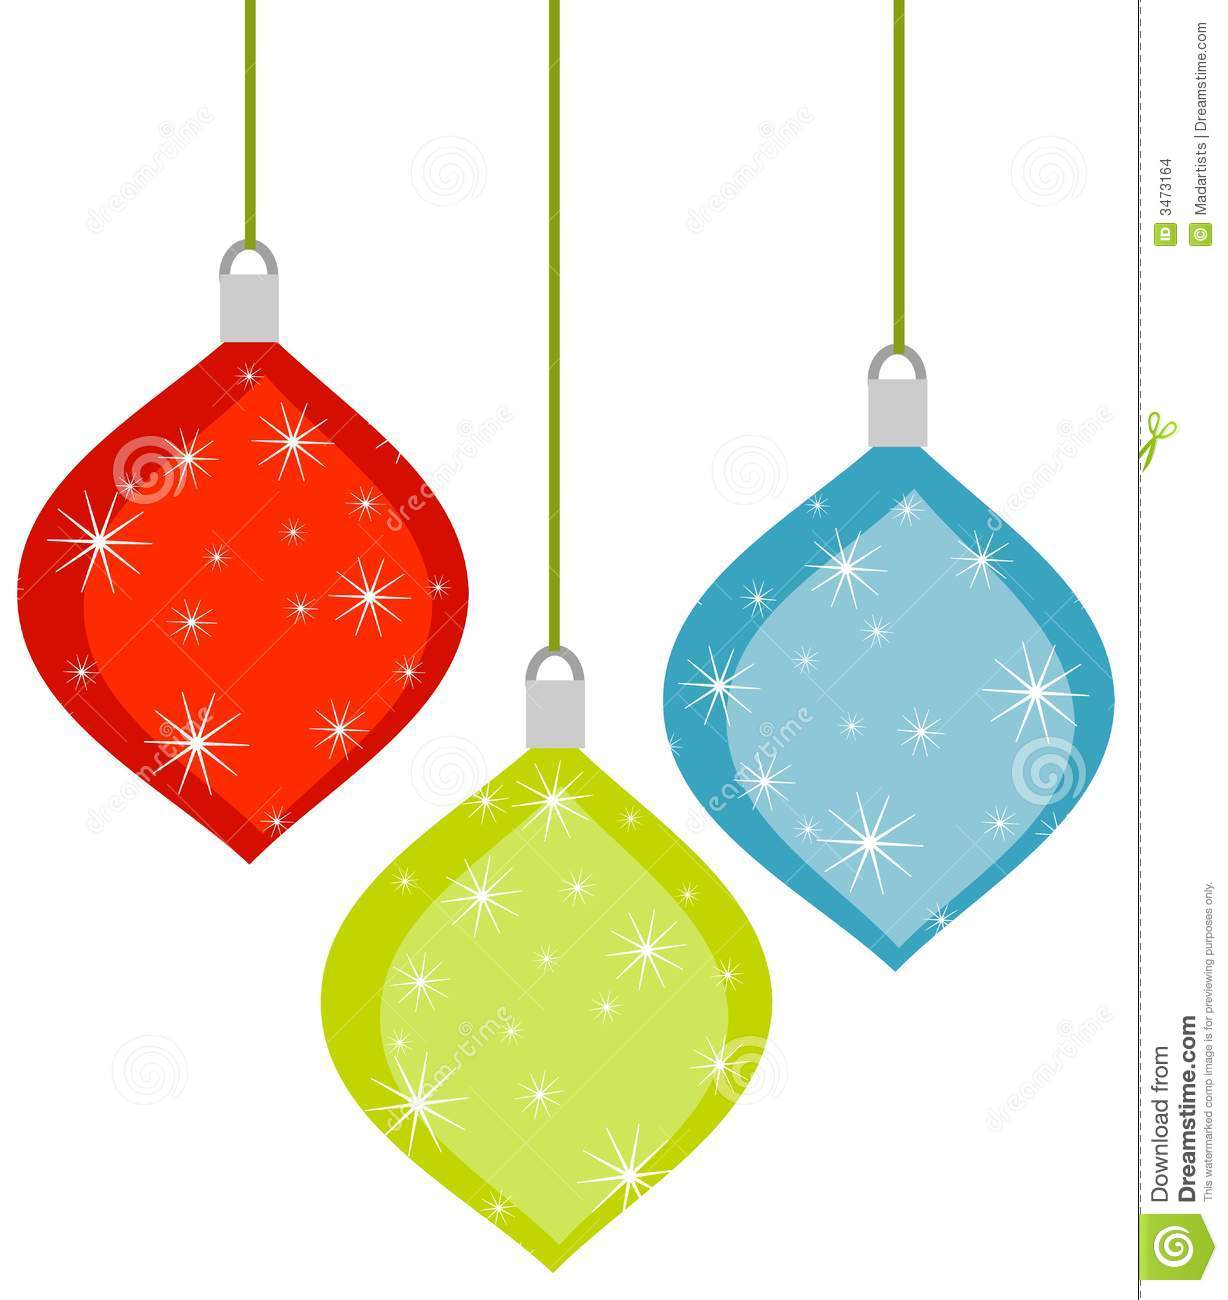 3 Retro Christmas Ornaments Stock Images - Image: 3473164